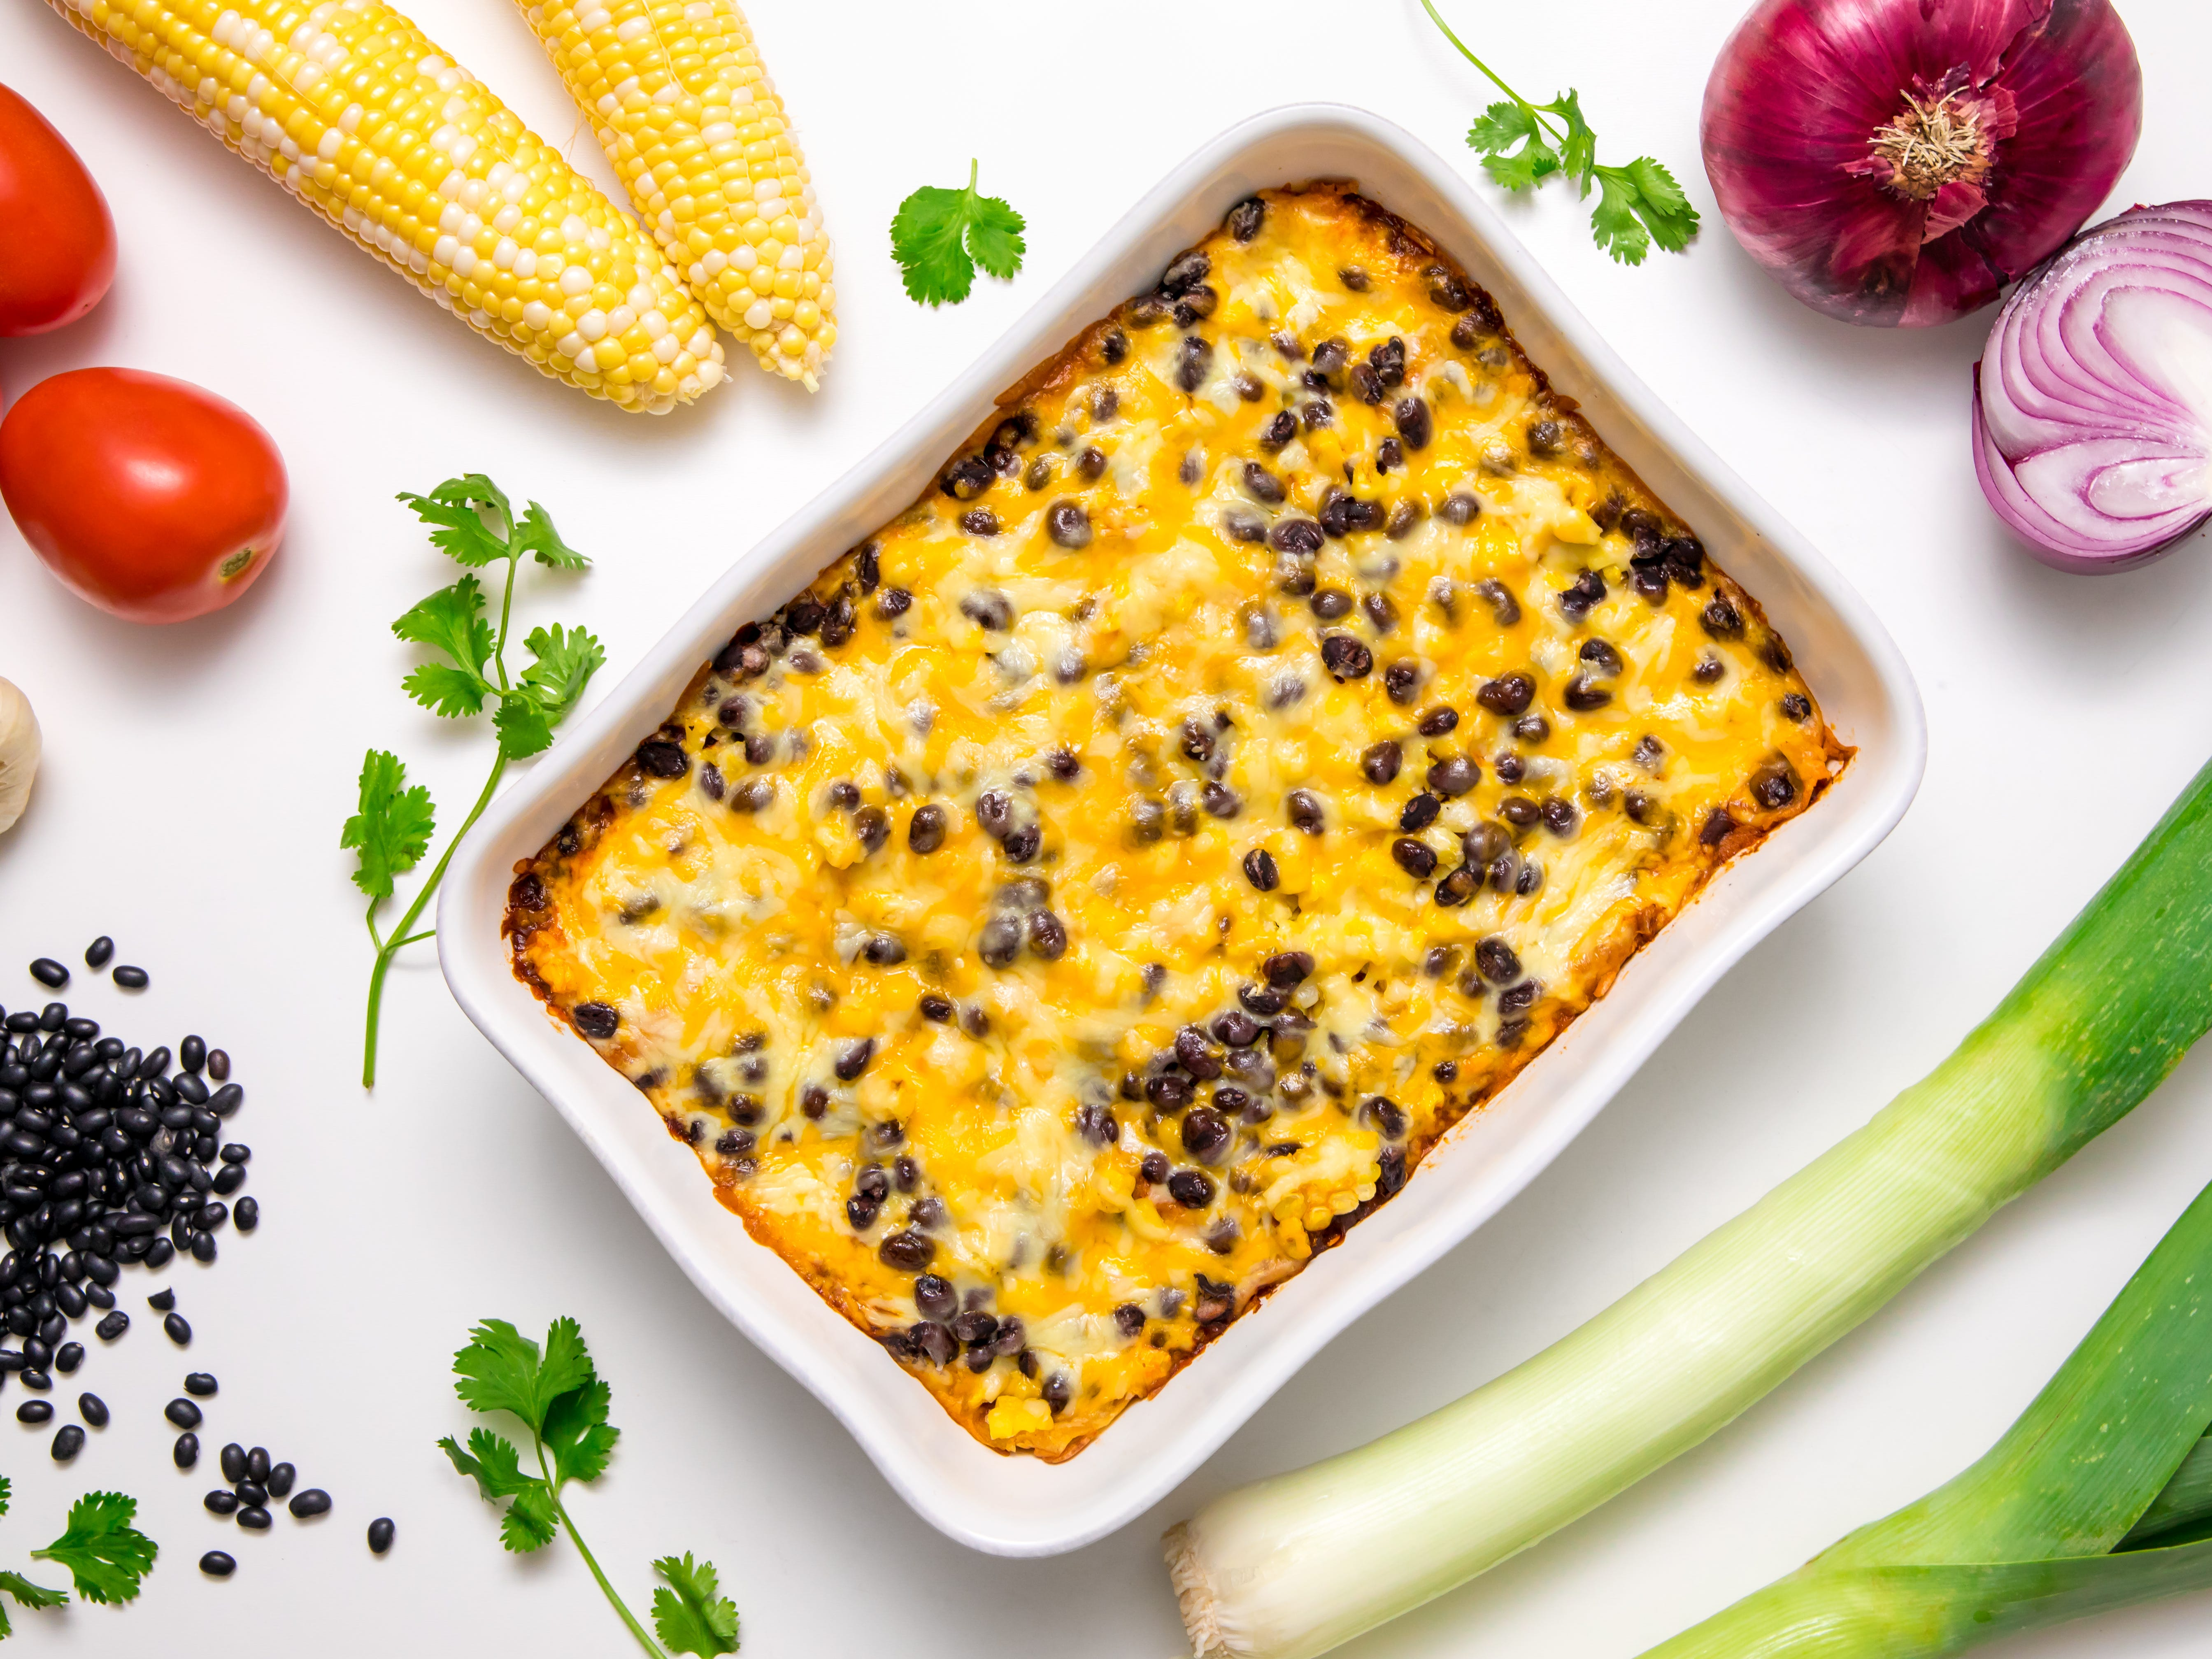 This loaded turkey enchiladas recipe is one of the tastiest of options! When we say loaded, we mean generously stuffed turkey and cheese enchiladas snuggly arranged in a casserole dish, then lavishly scattered with a scrumptious combination of corn, black beans, and more cheese. When these leftover turkey enchiladas come out of the oven, your family is going to race to the table and fight for the first indulgent bite.